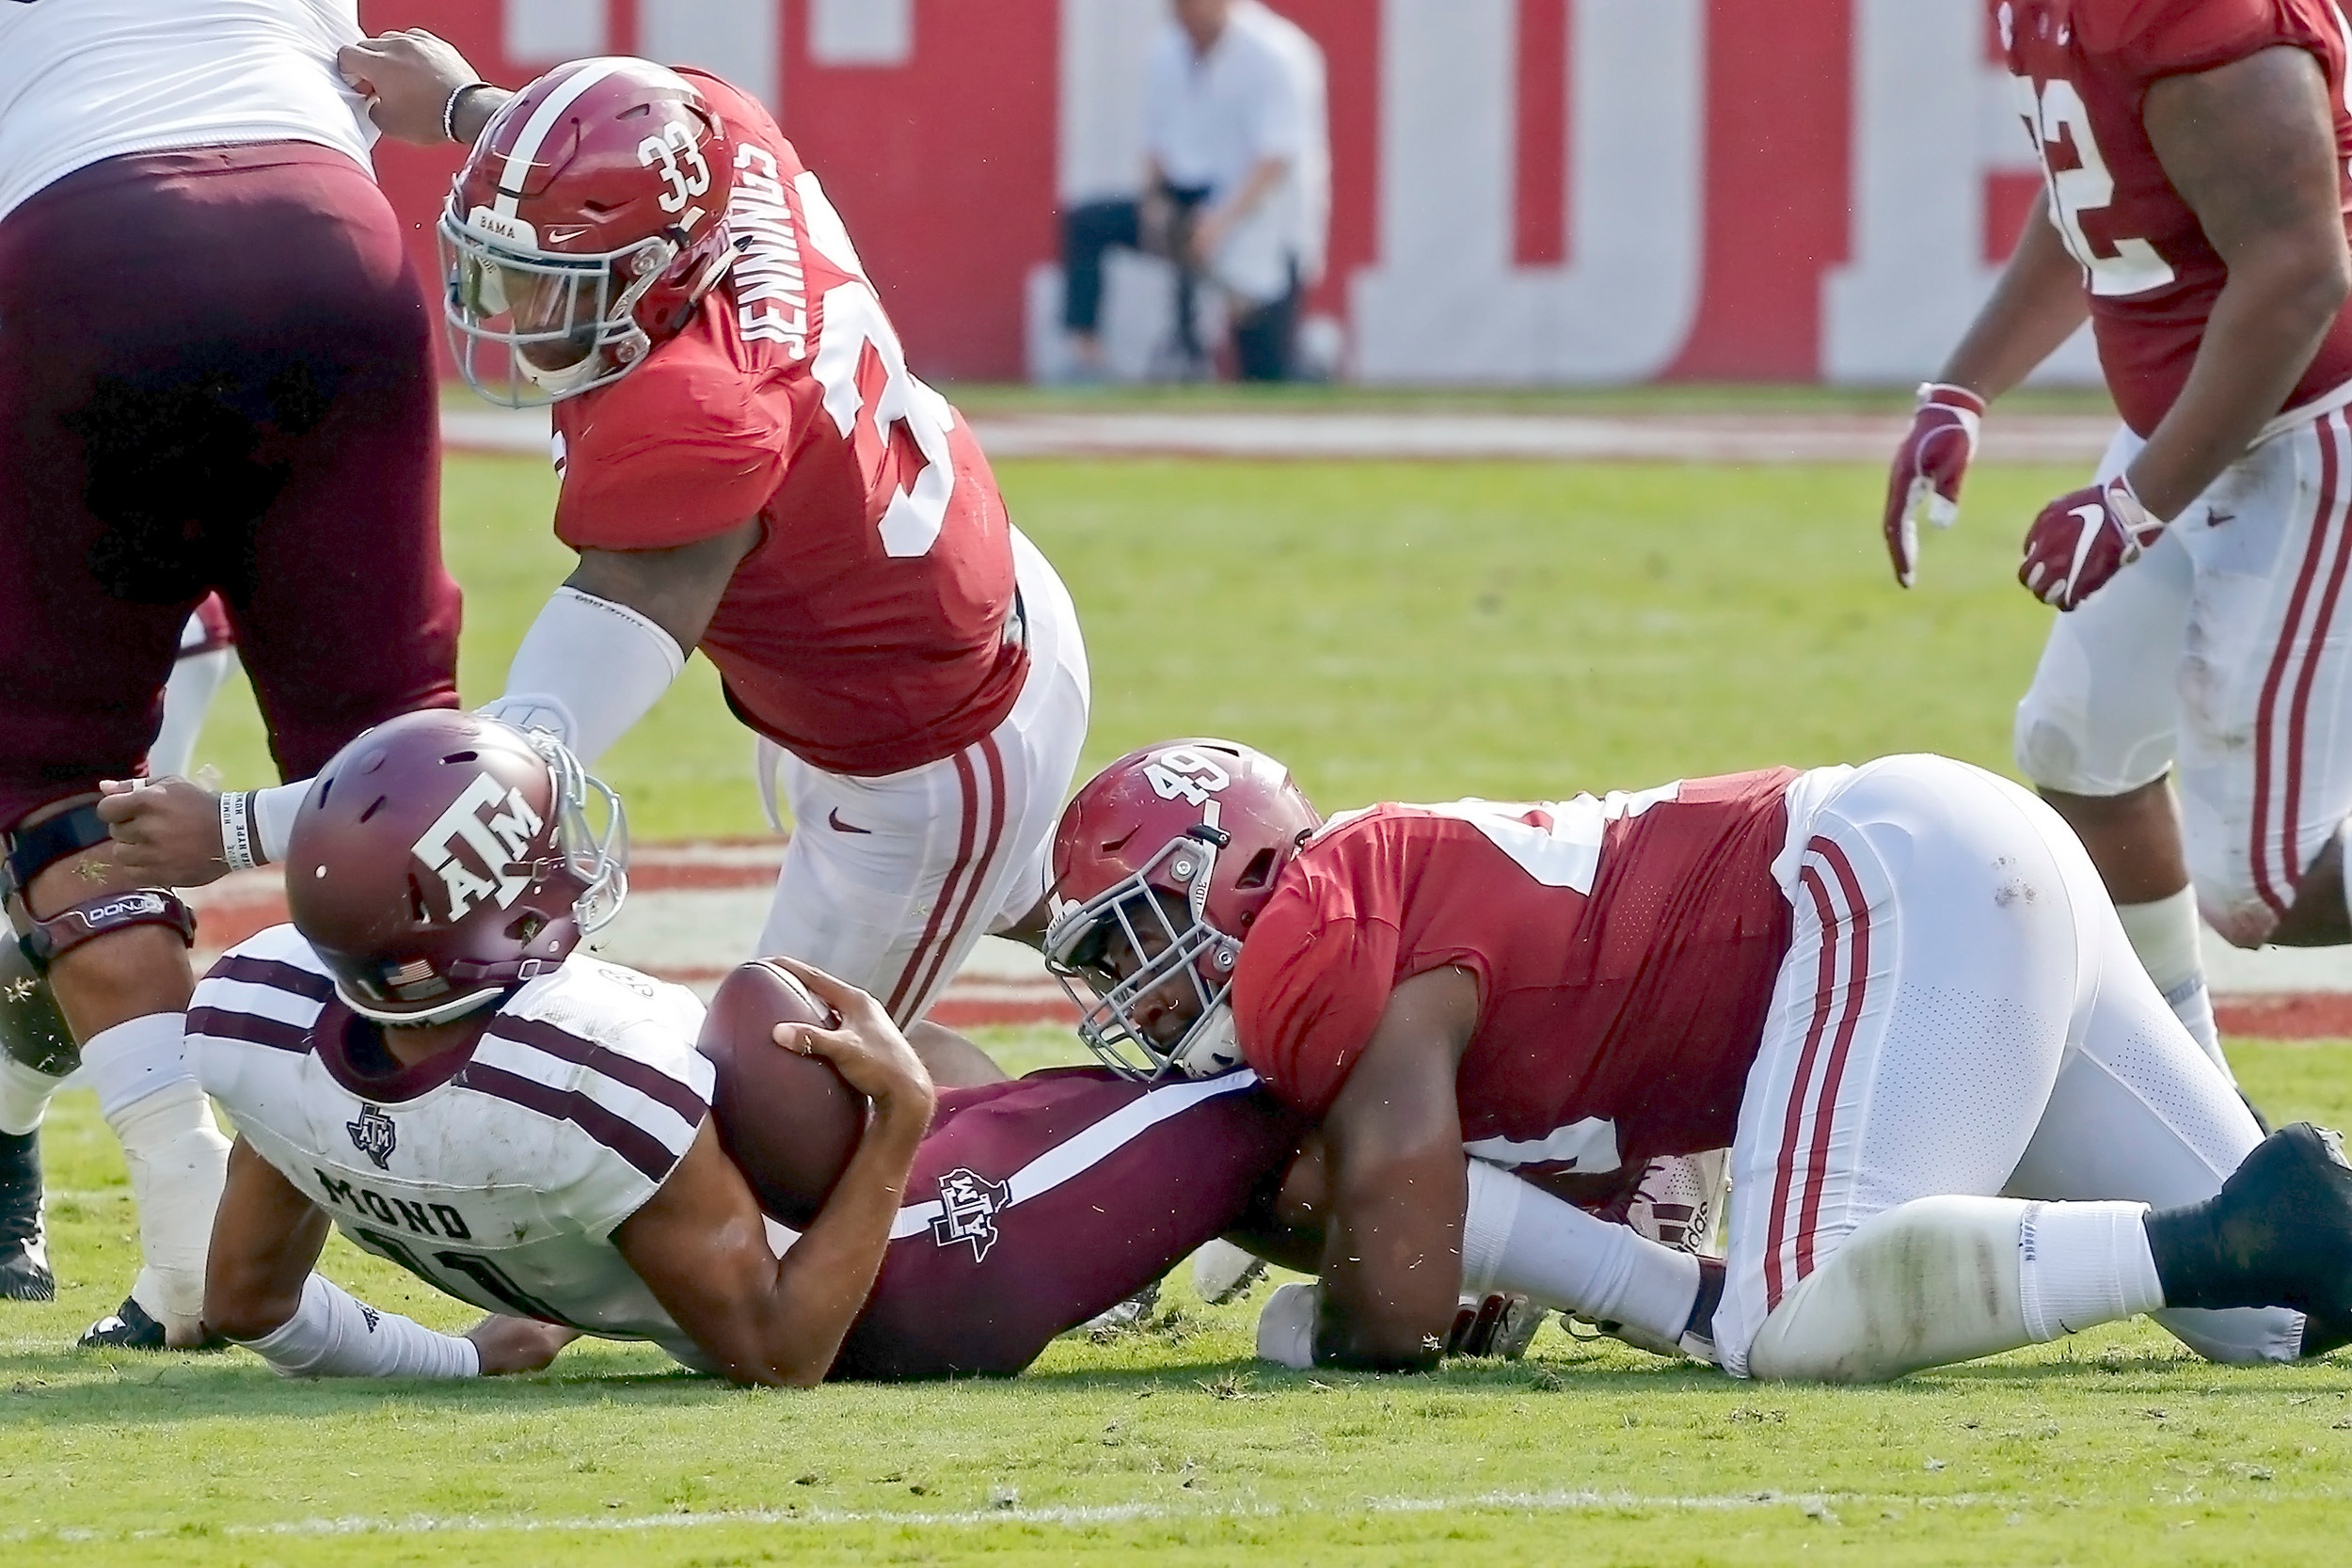 Alabama Crimson Tide defensive lineman Isaiah Buggs (49) put pressure on Texas A&M Aggies quarterback Kellen Mond (11) all day during the game between the Texas A&M Aggies and the University of Alabama Crimson Tide at Bryant-Denny Stadium.  Jason Clark / Daily Mountain Eagle